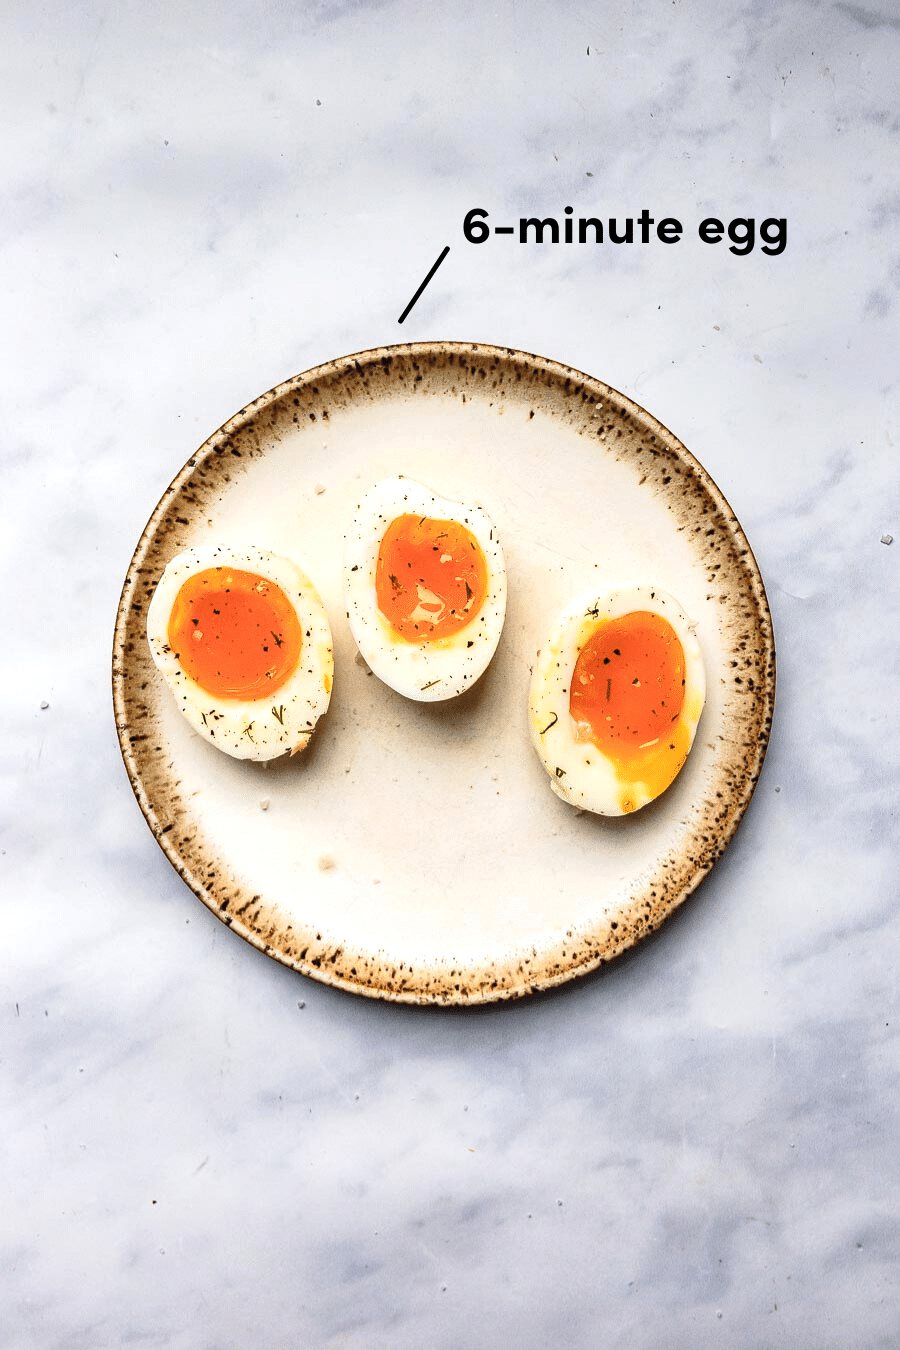 three jammy boiled eggs halved and resting on a stoneware place topped with salt and pepper and 6-minute cook time indicator